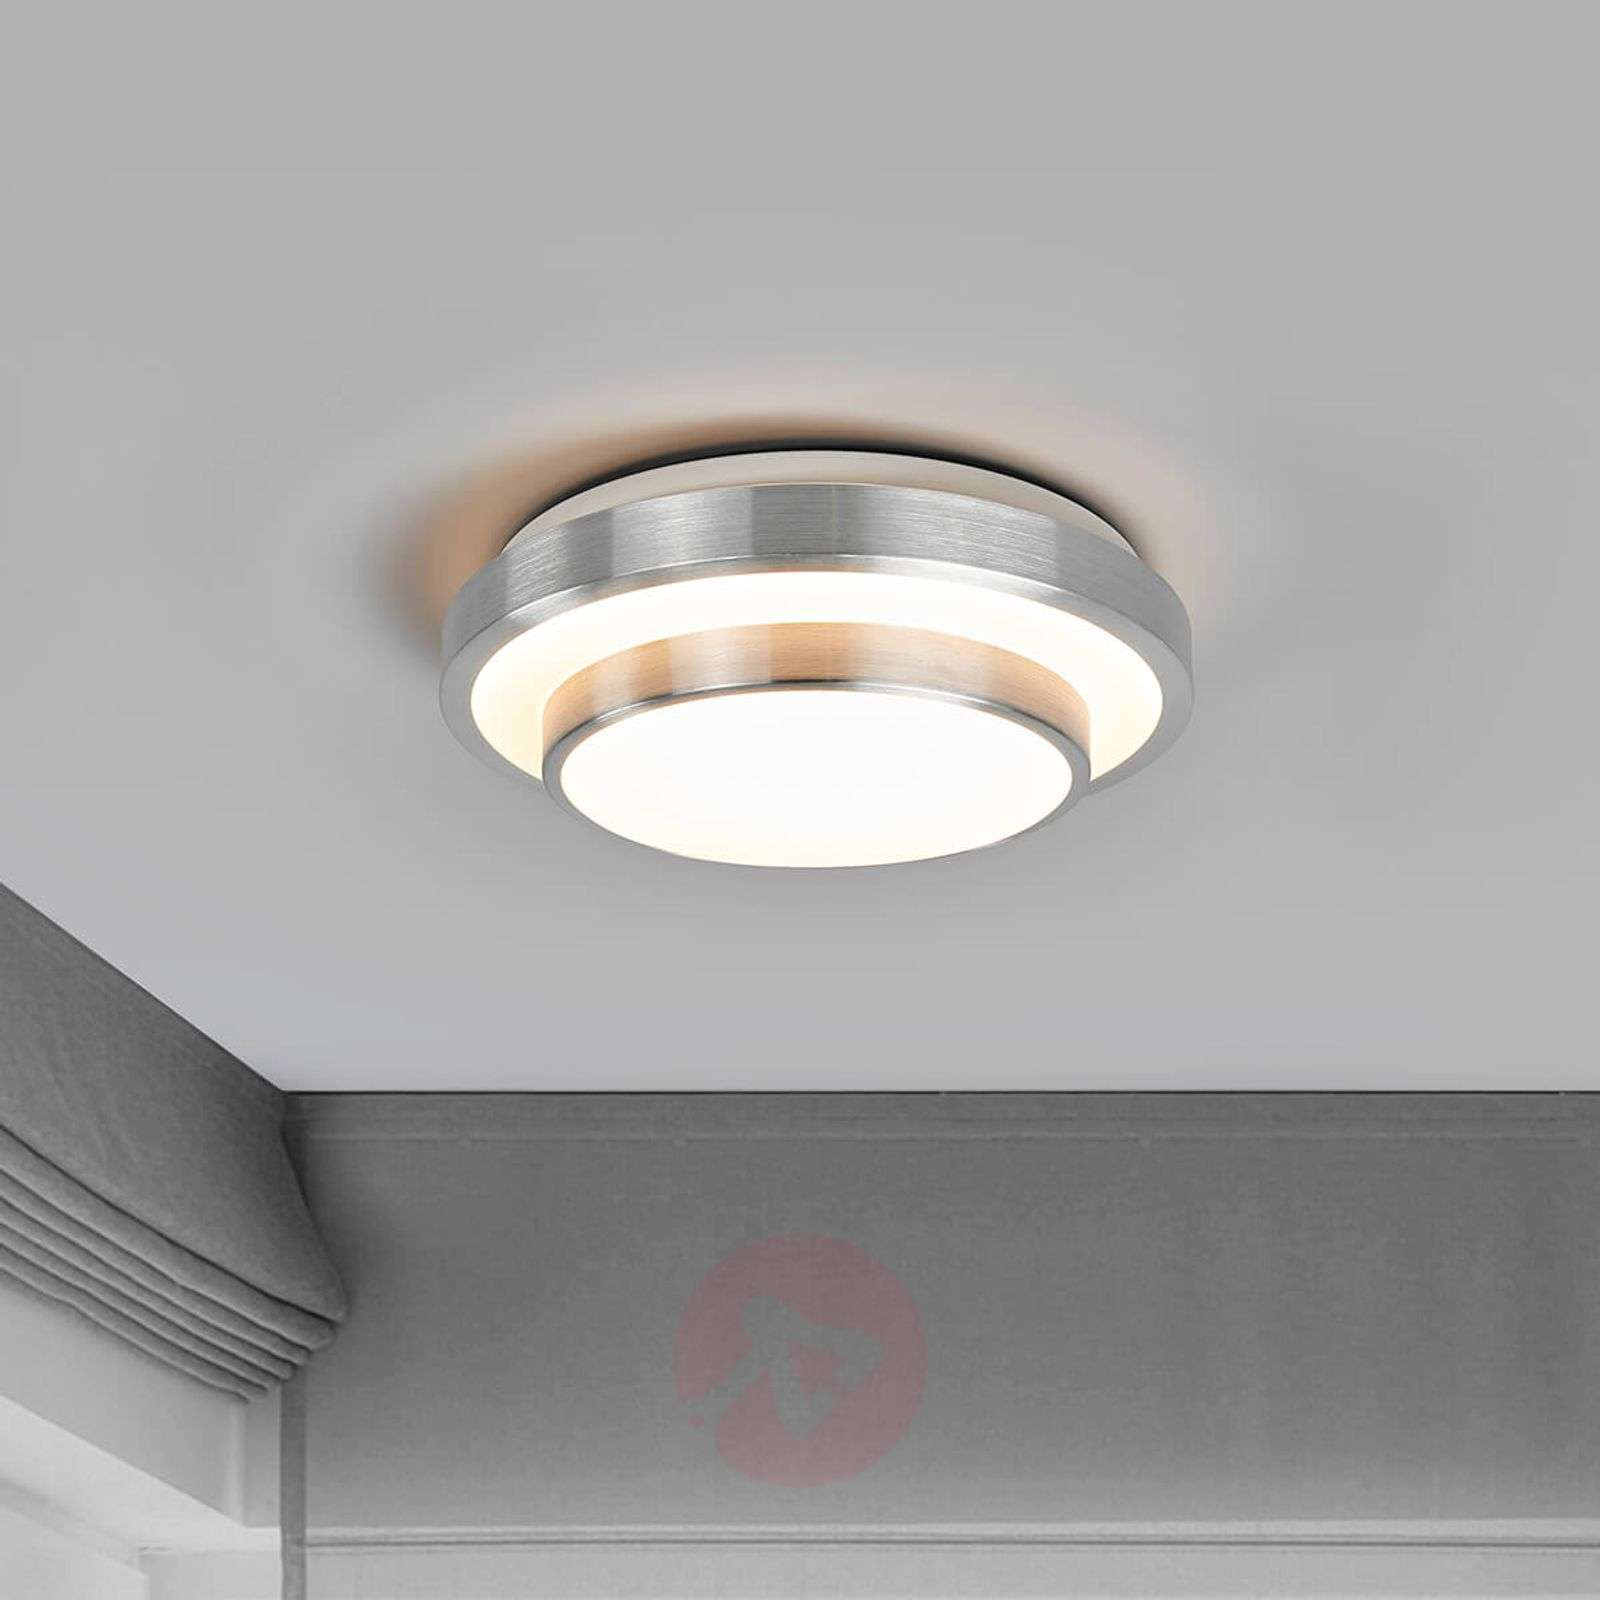 Huberta LED ceiling lamp, round, 29 cm-9974026-01